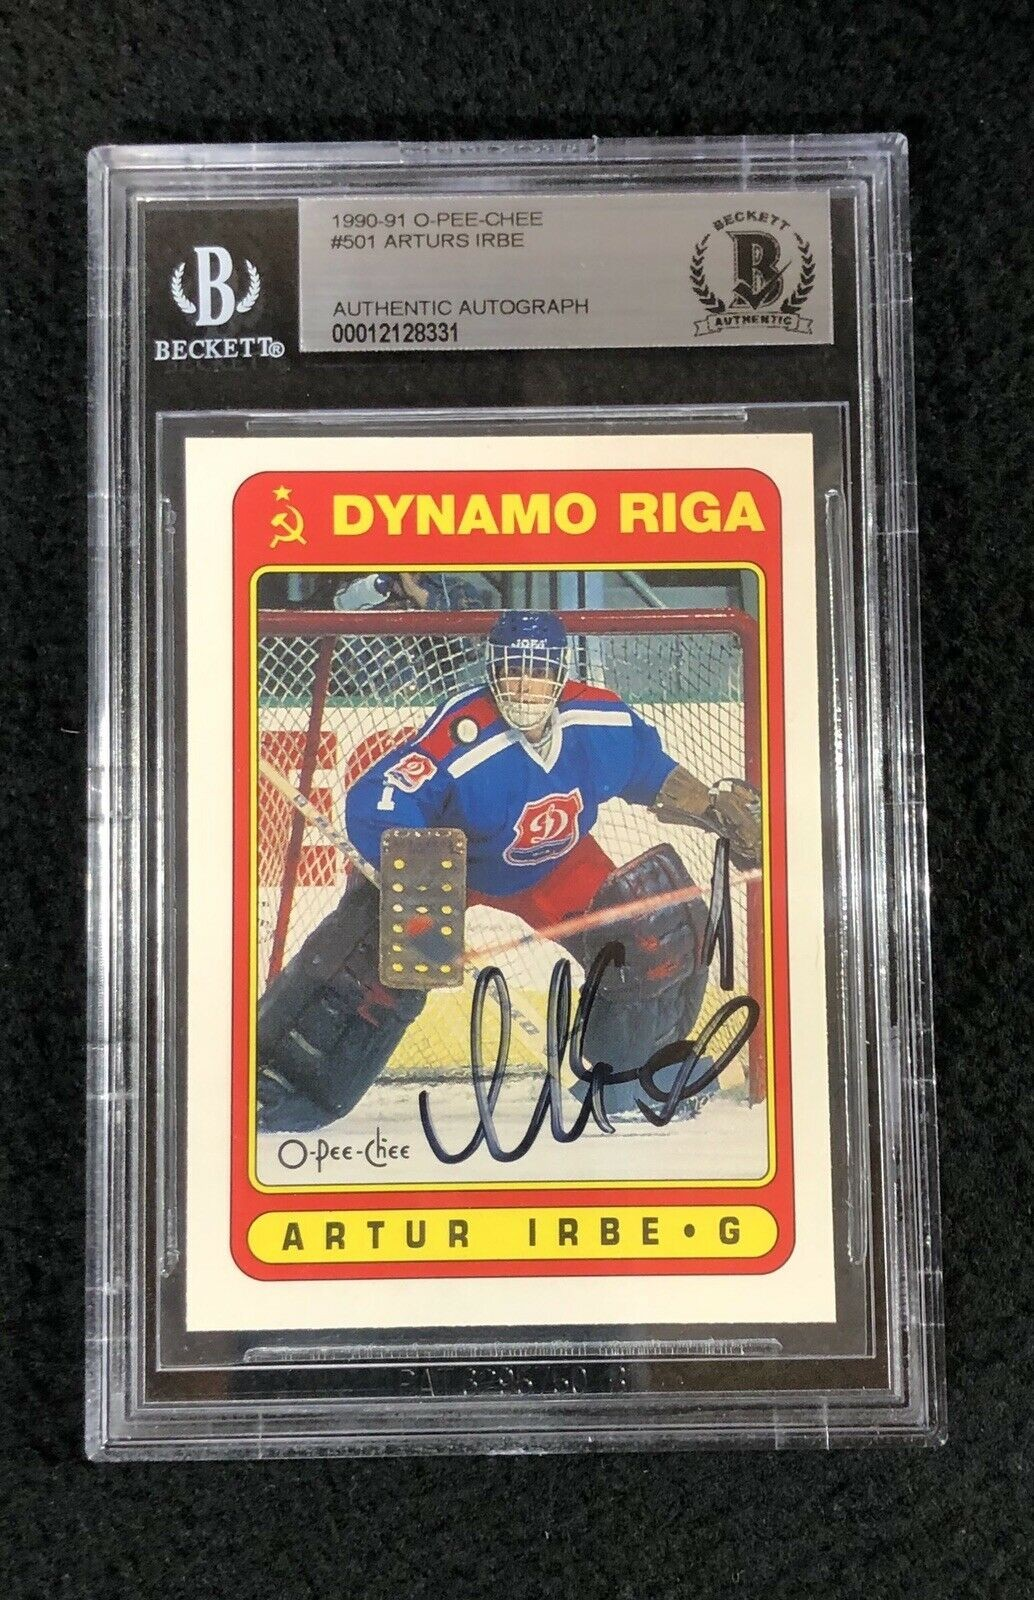 Arturs Irbe signed rookie card